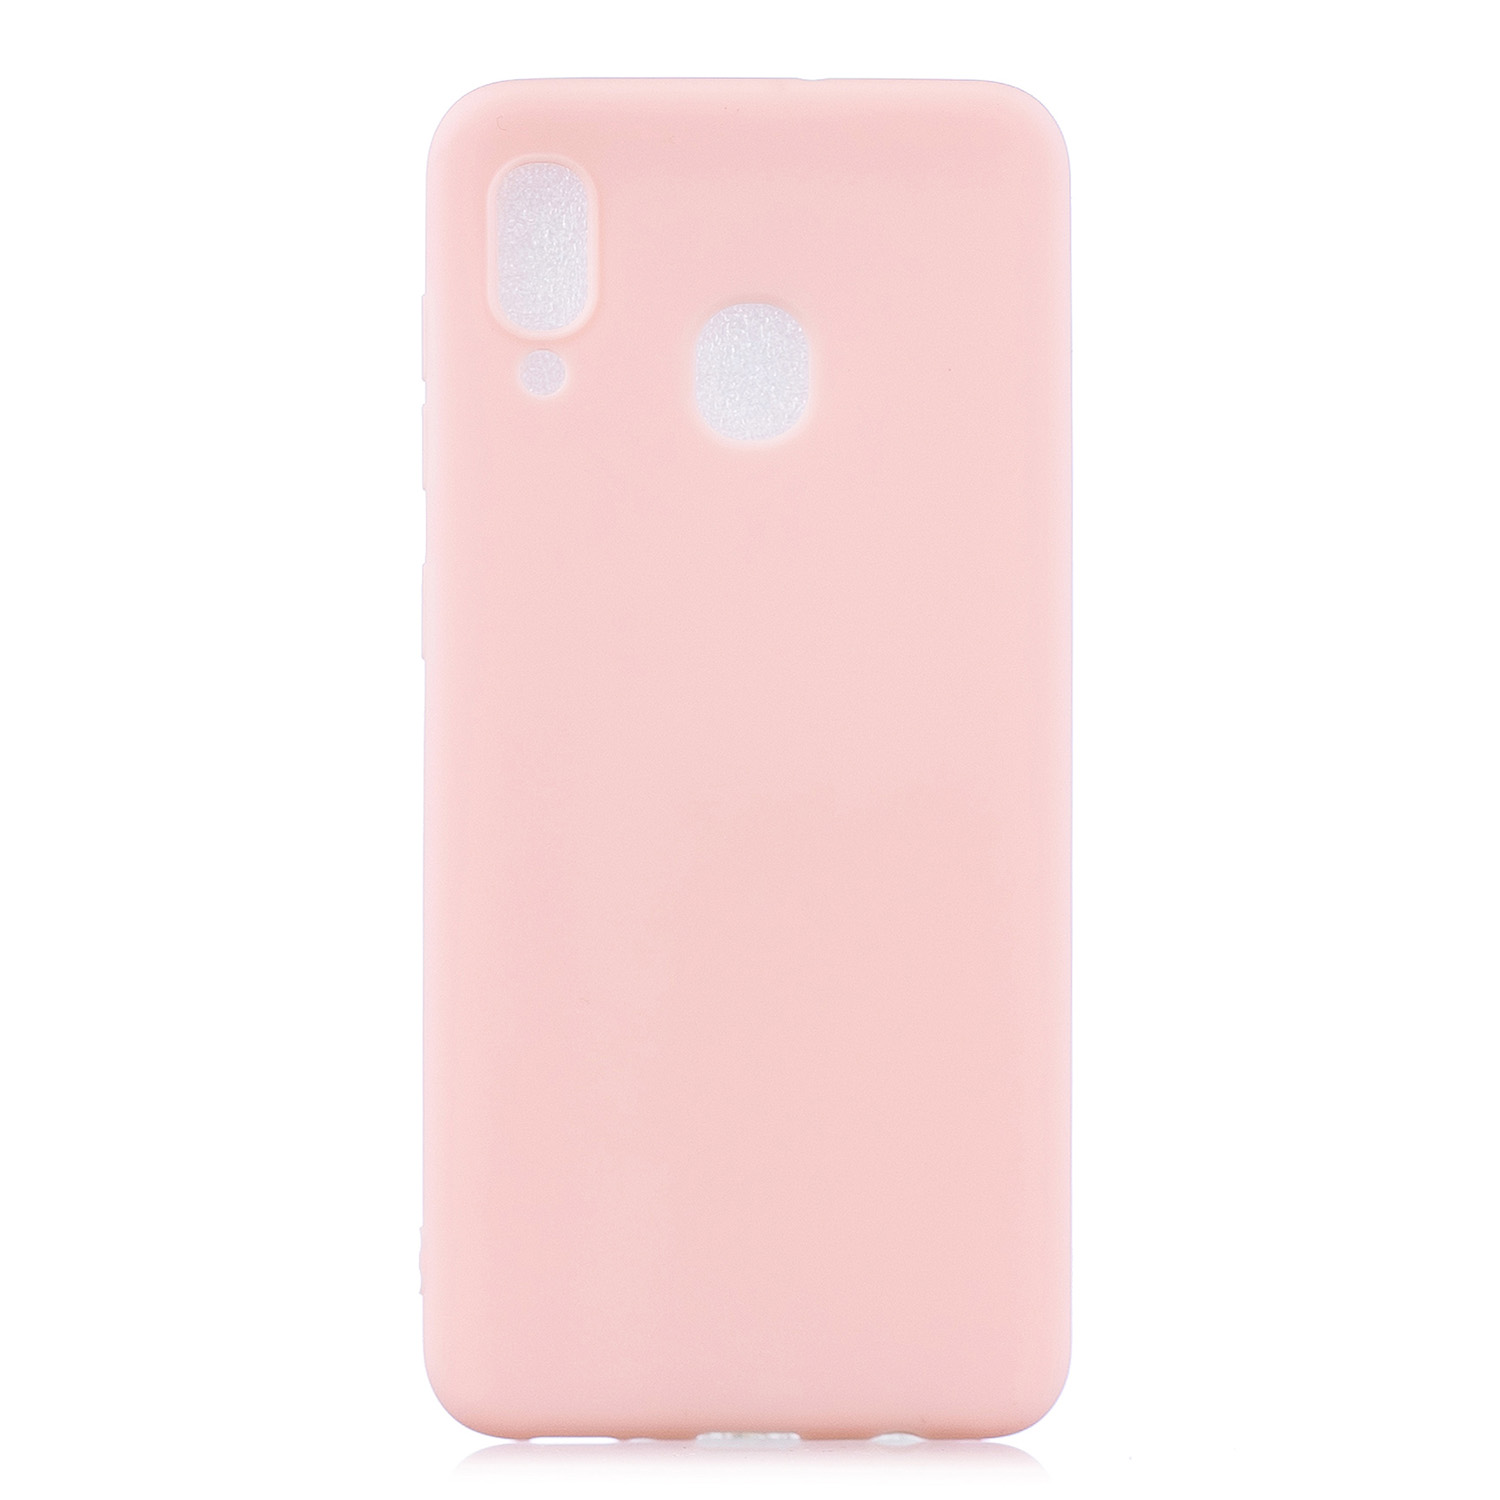 For HUAWEI Y9 2019 Lovely Candy Color Matte TPU Anti-scratch Non-slip Protective Cover Back Case Light pink